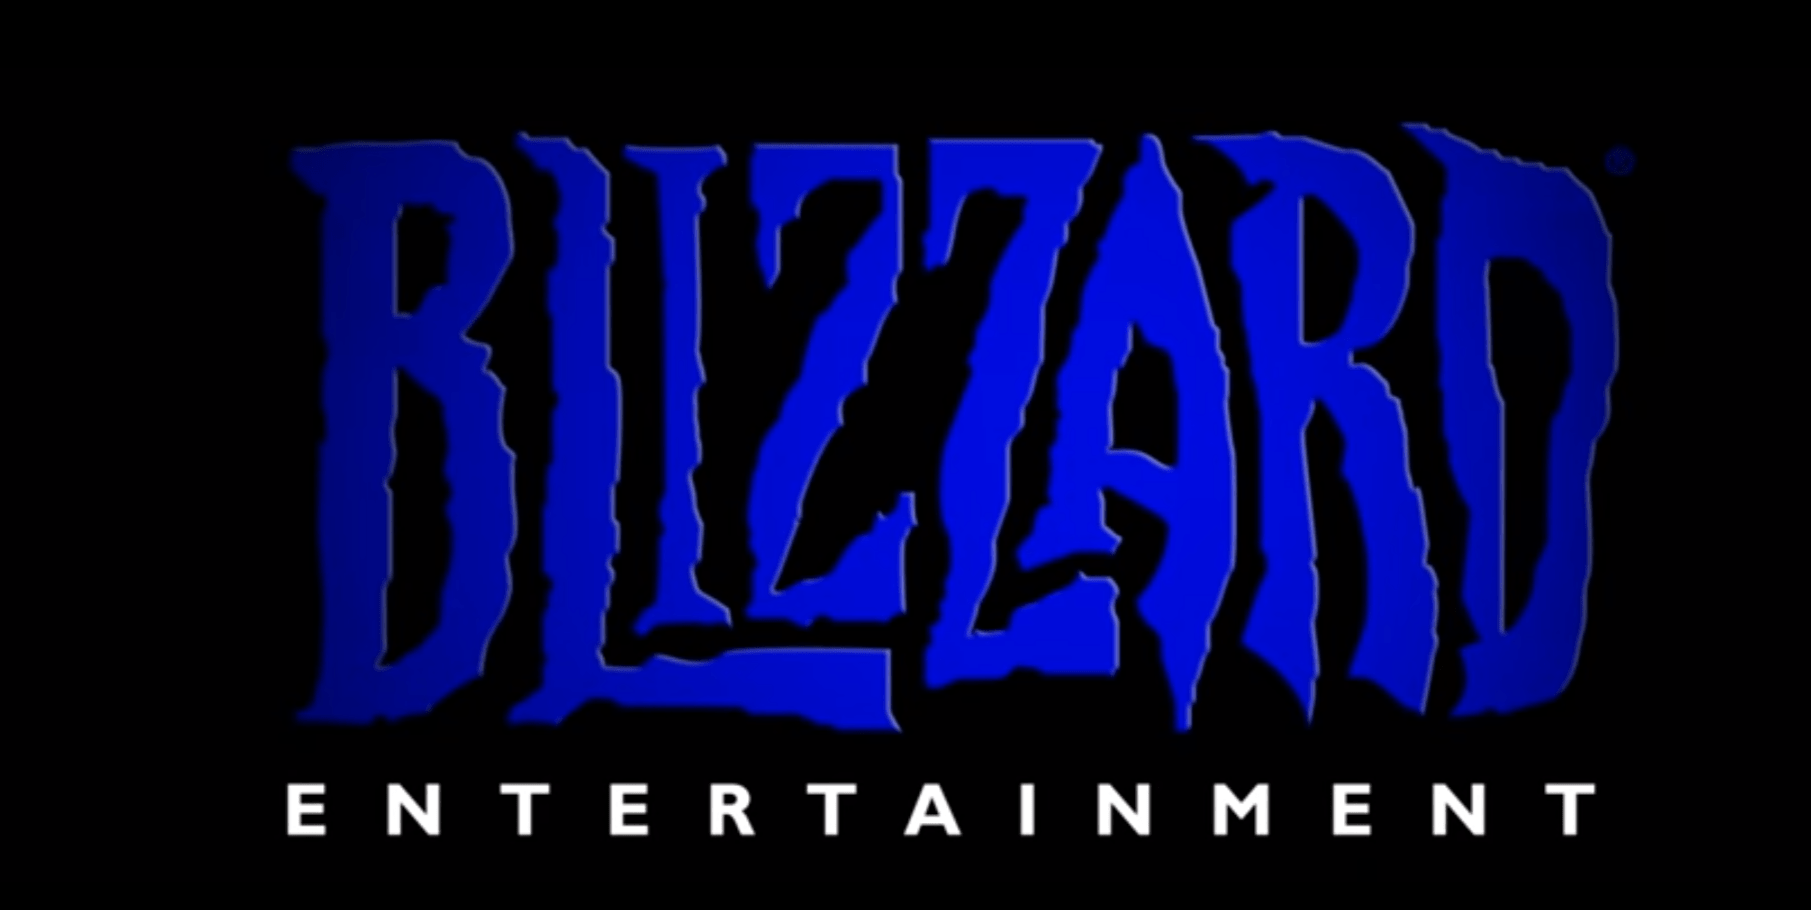 Blizzard Reports Experiencing A DDoS Attack On North American Servers, Affecting Servers For The Third Time In One Day